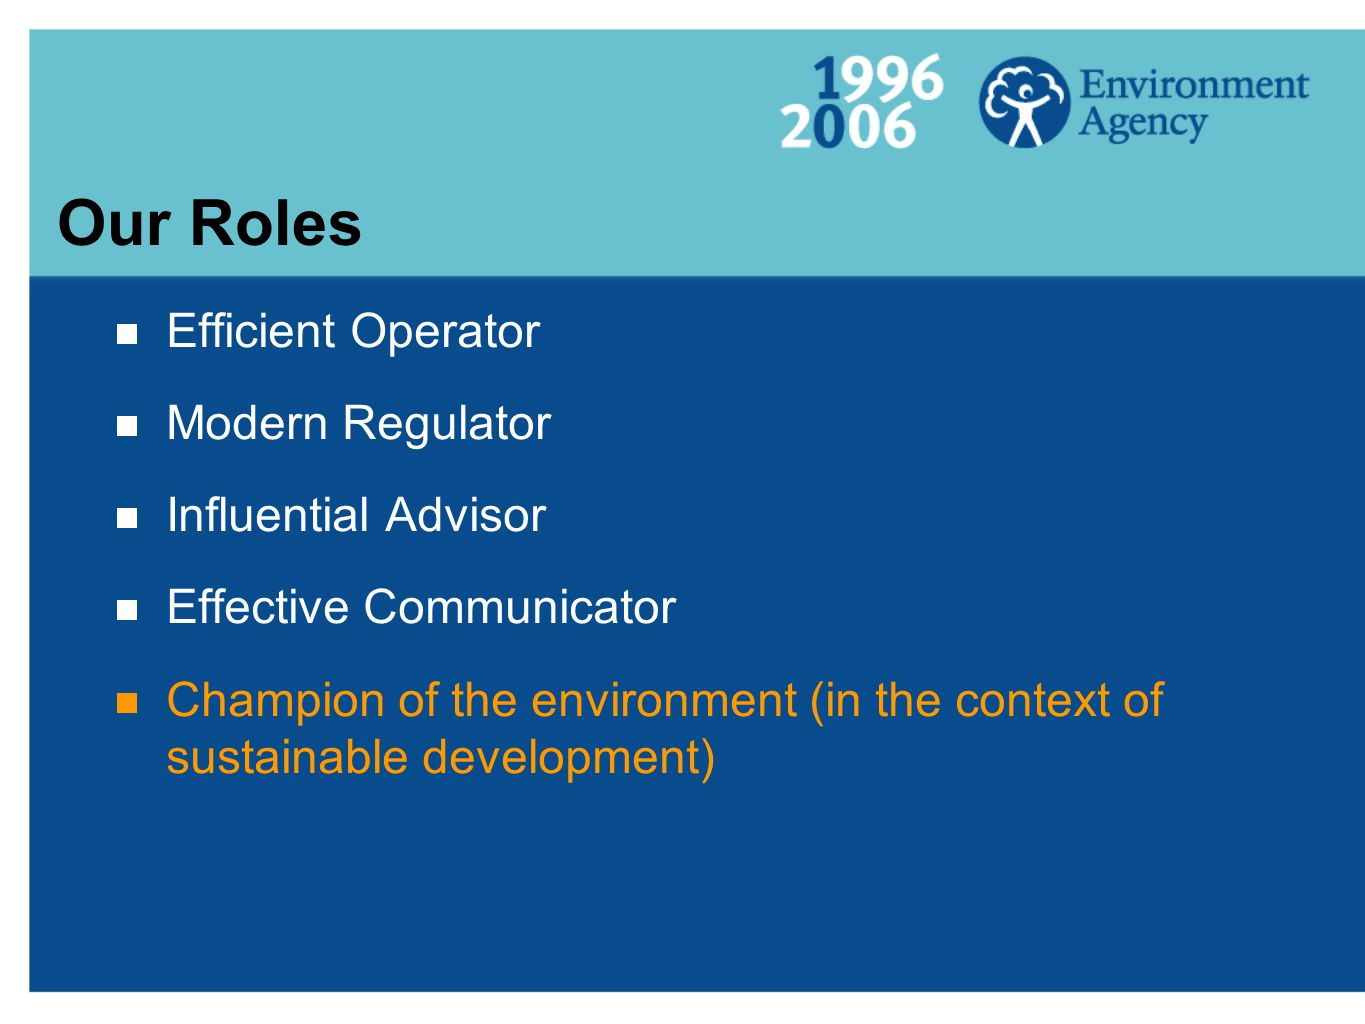  Efficient Operator  Modern Regulator  Influential Advisor  Effective Communicator  Champion of the environment (in the context of sustainable development) Our Roles